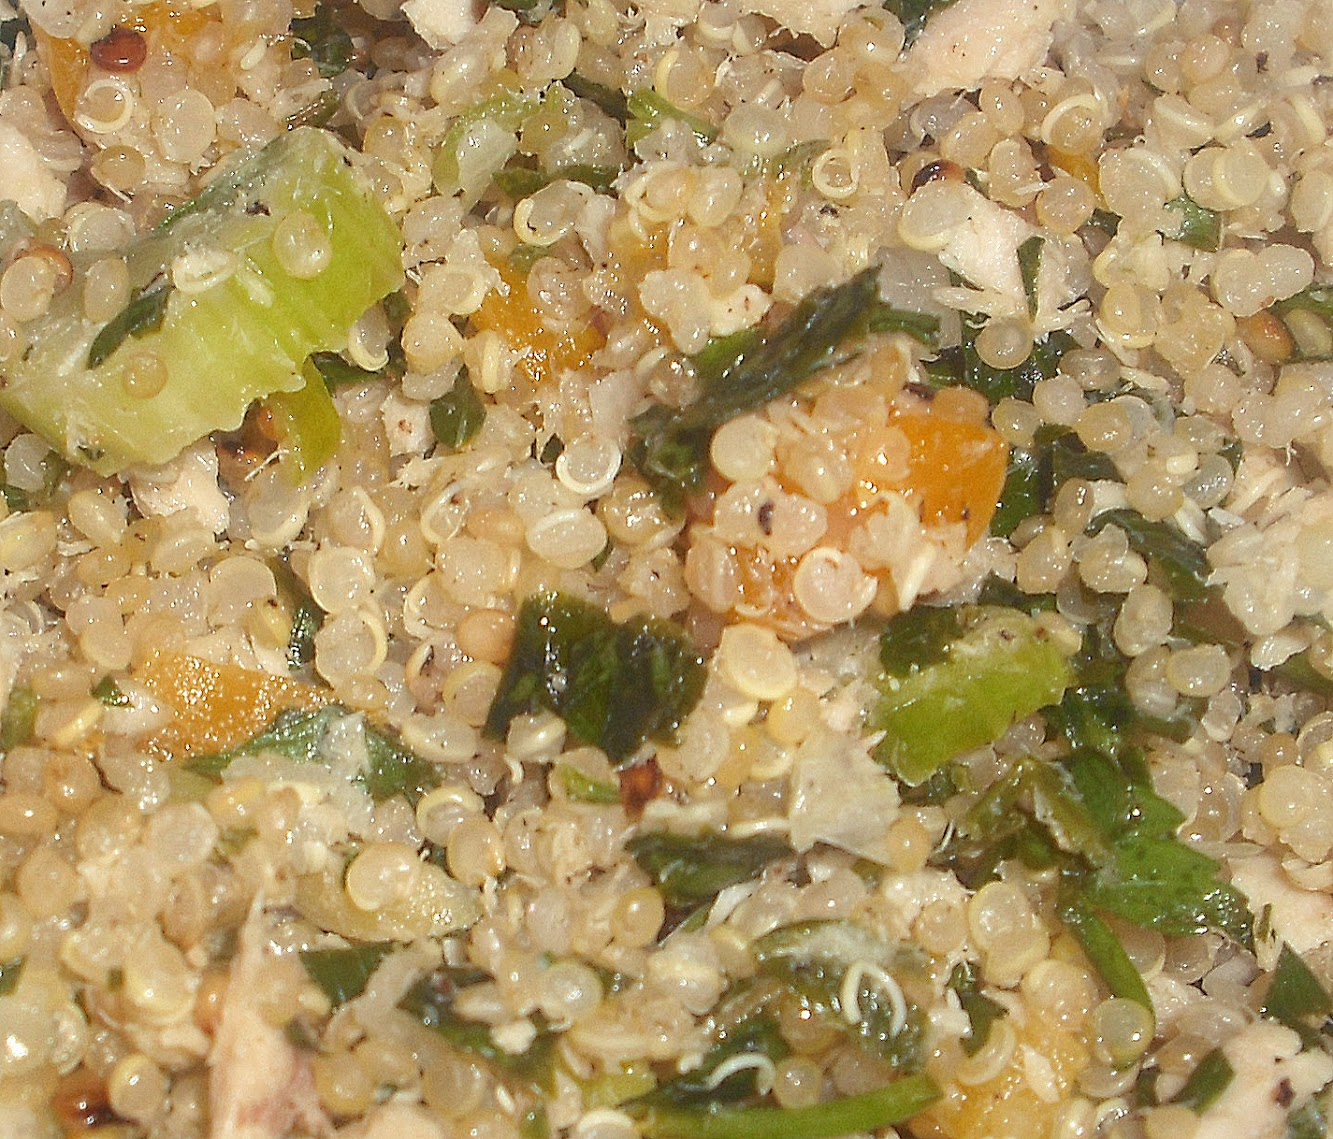 Quinoa and Parsley Salad